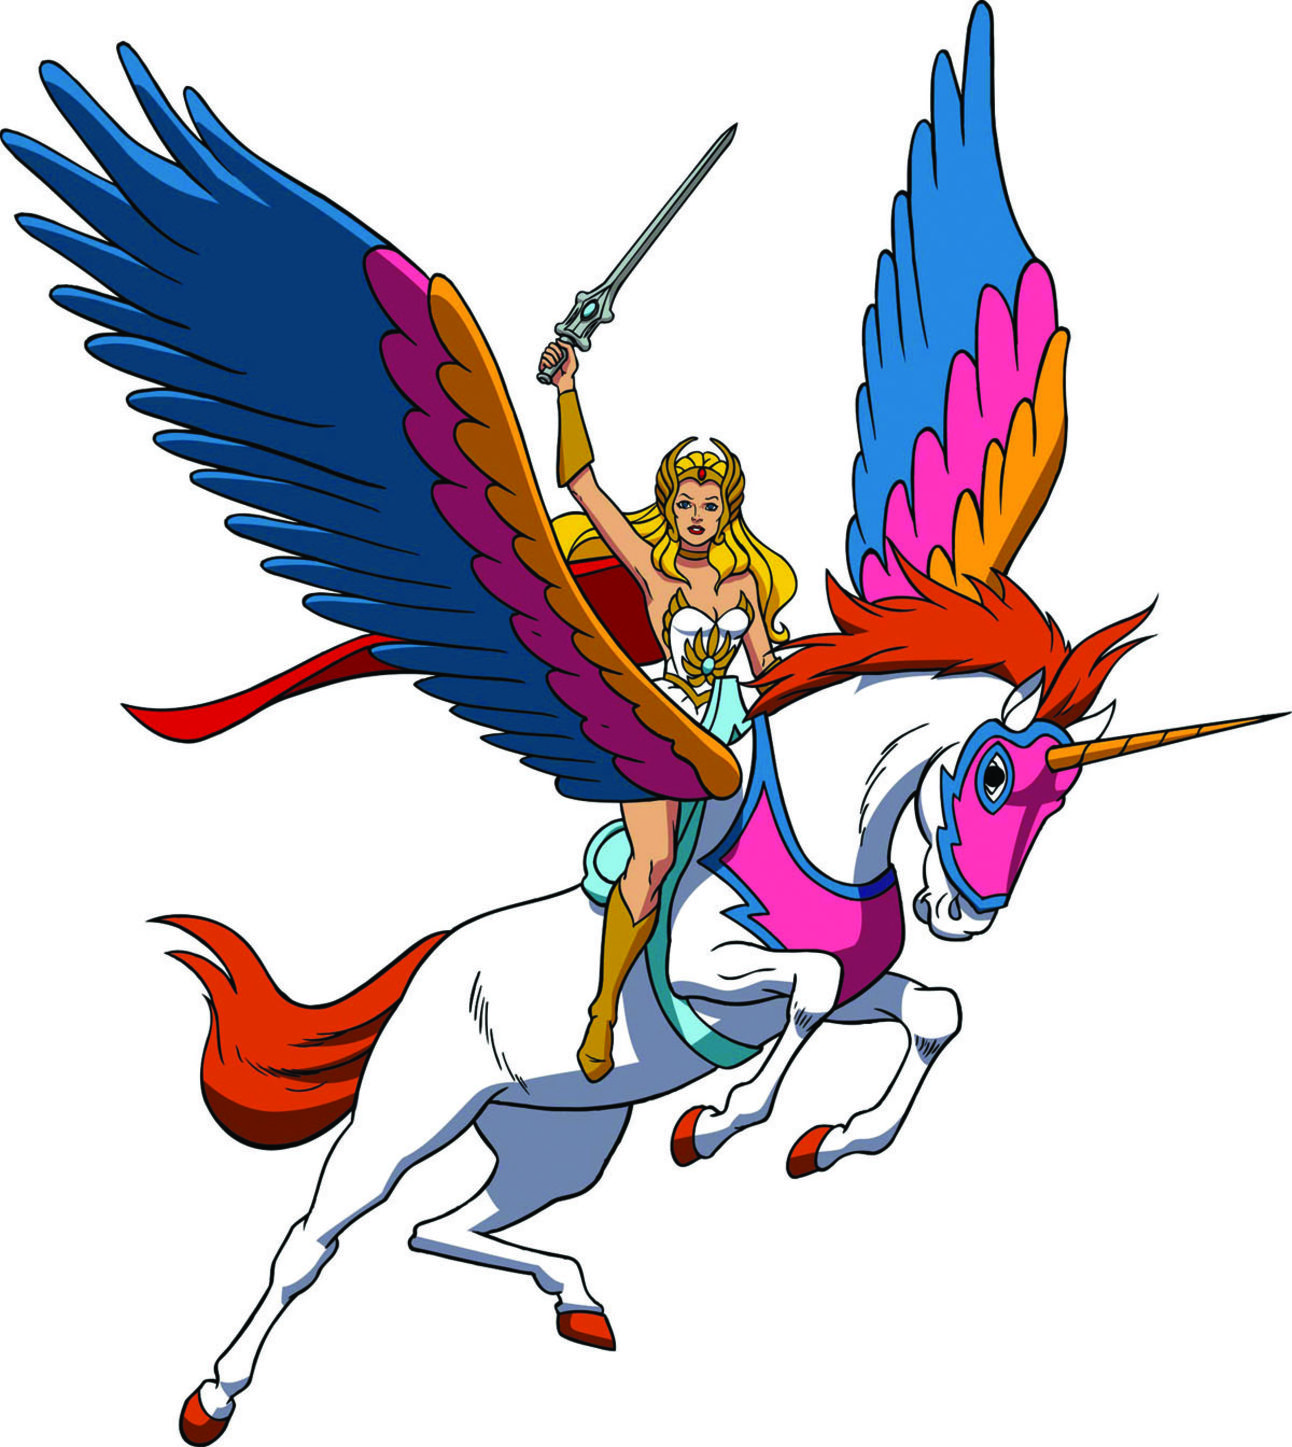 Celebrating She-Ra's anniversary and She-Ra and the